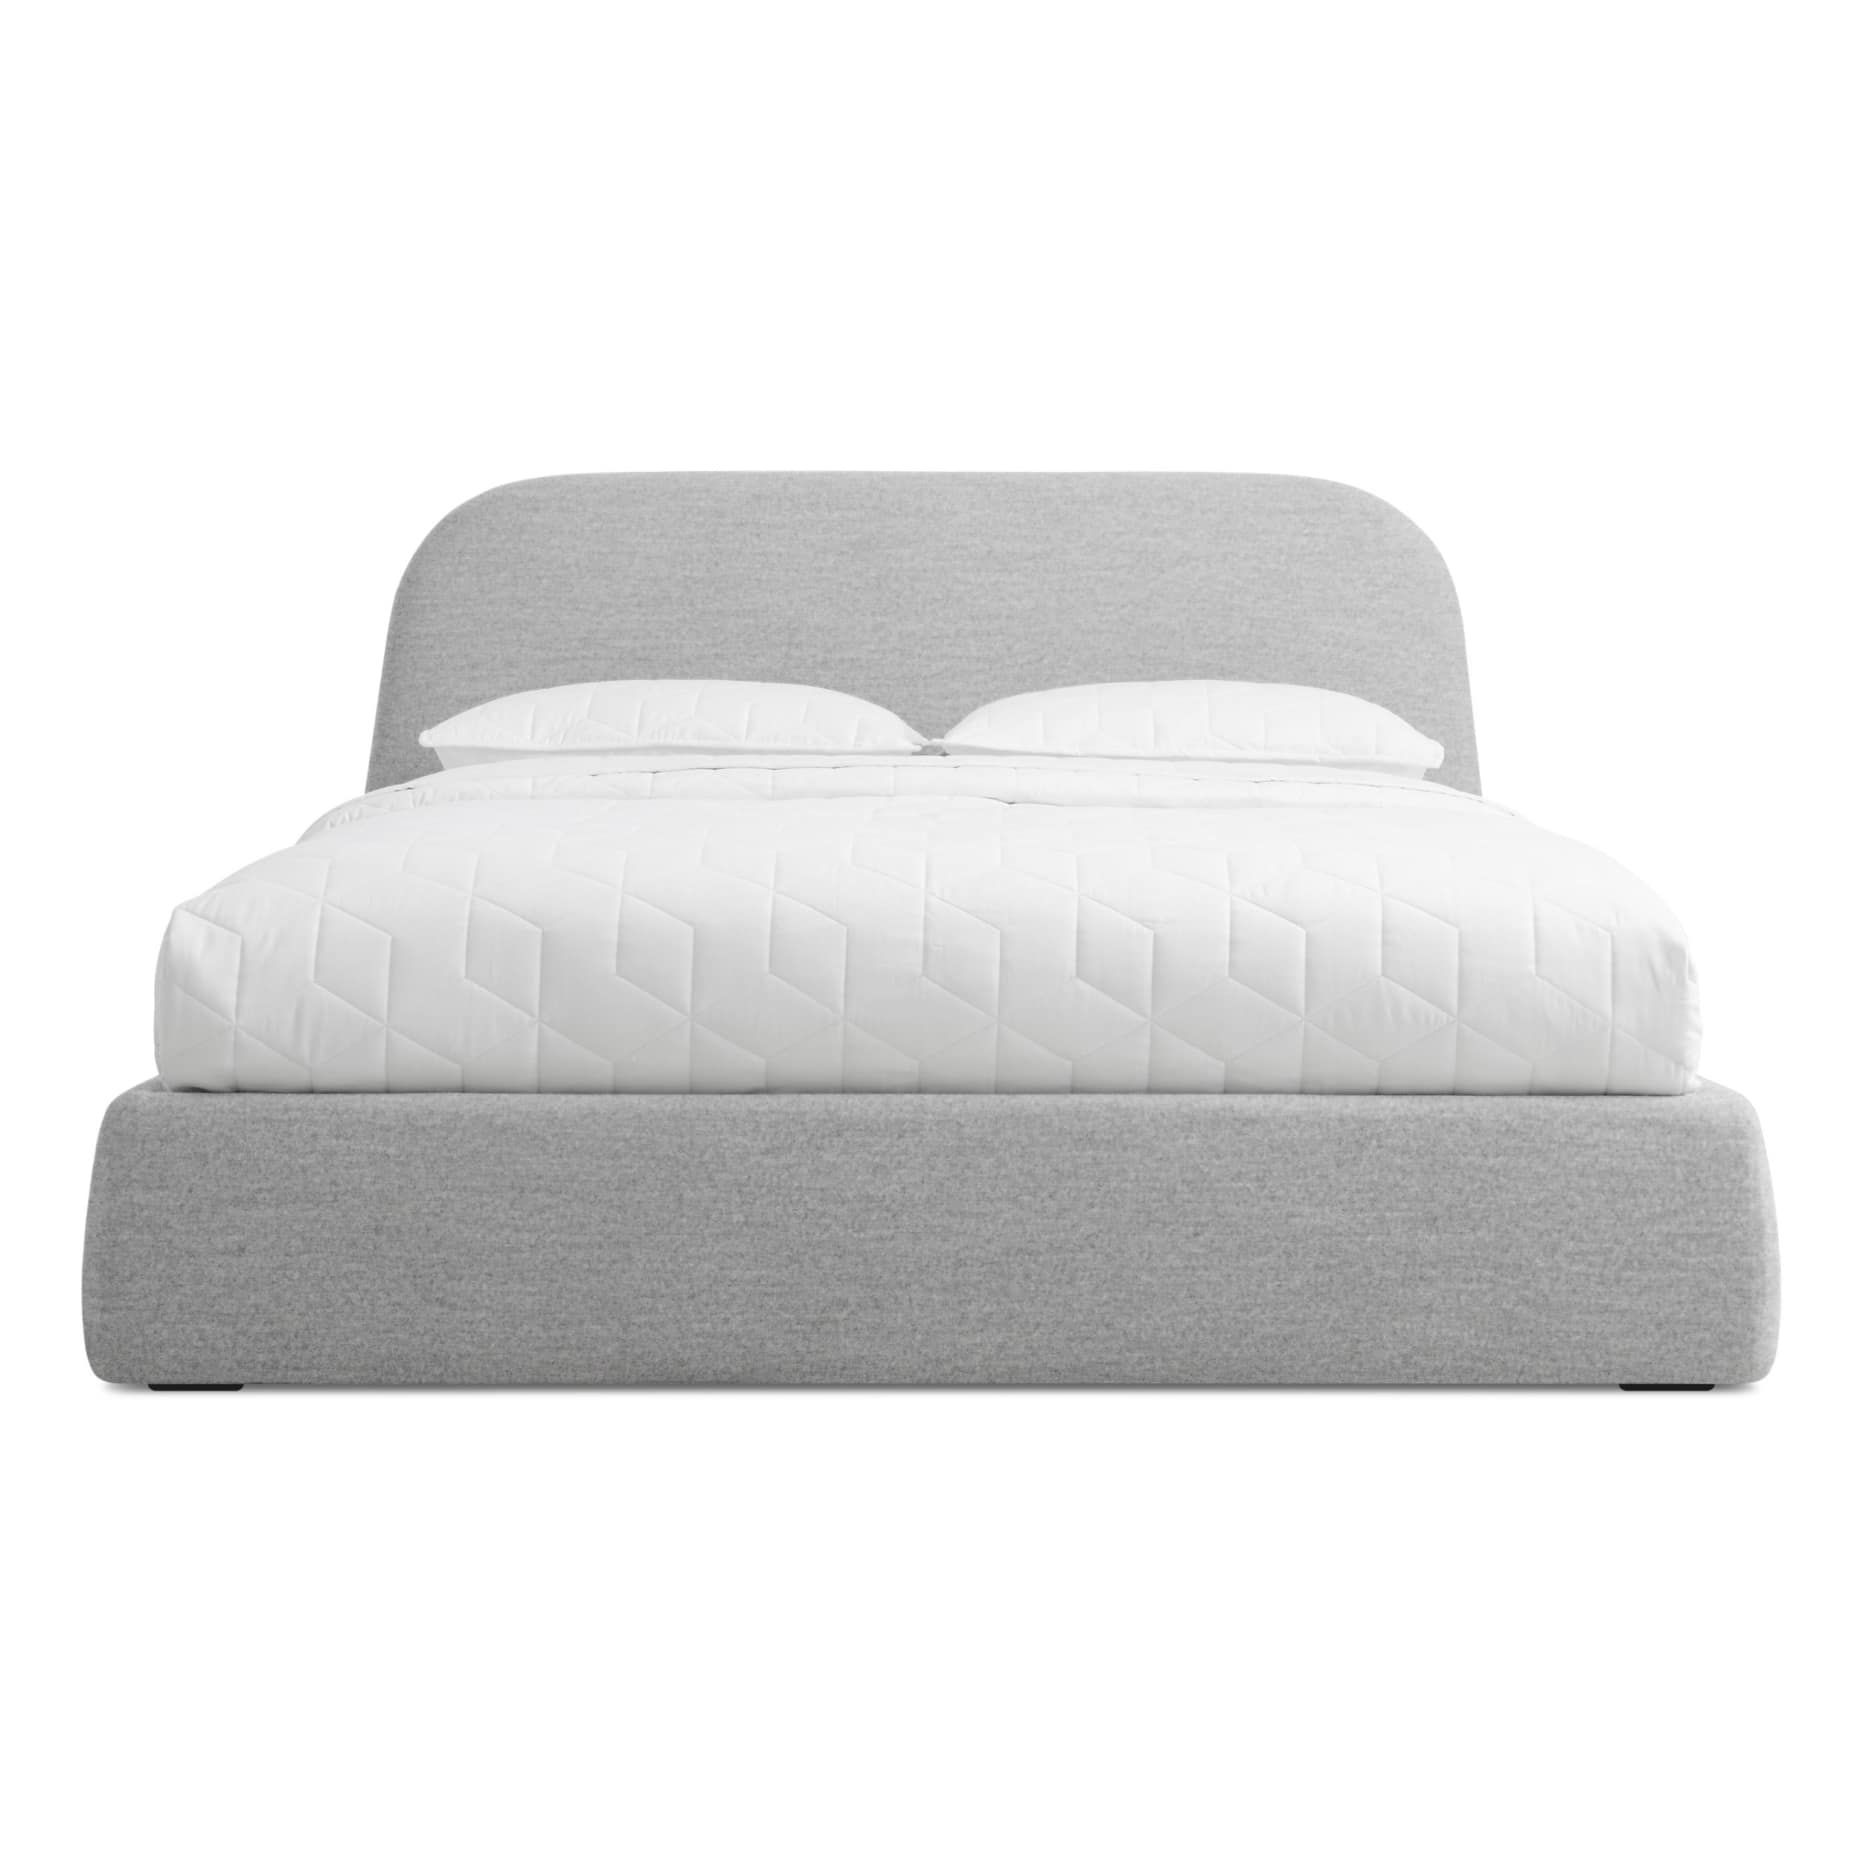 Lid Queen Storage Bed Storage Bed White Linen Bedding Affordable Bedding